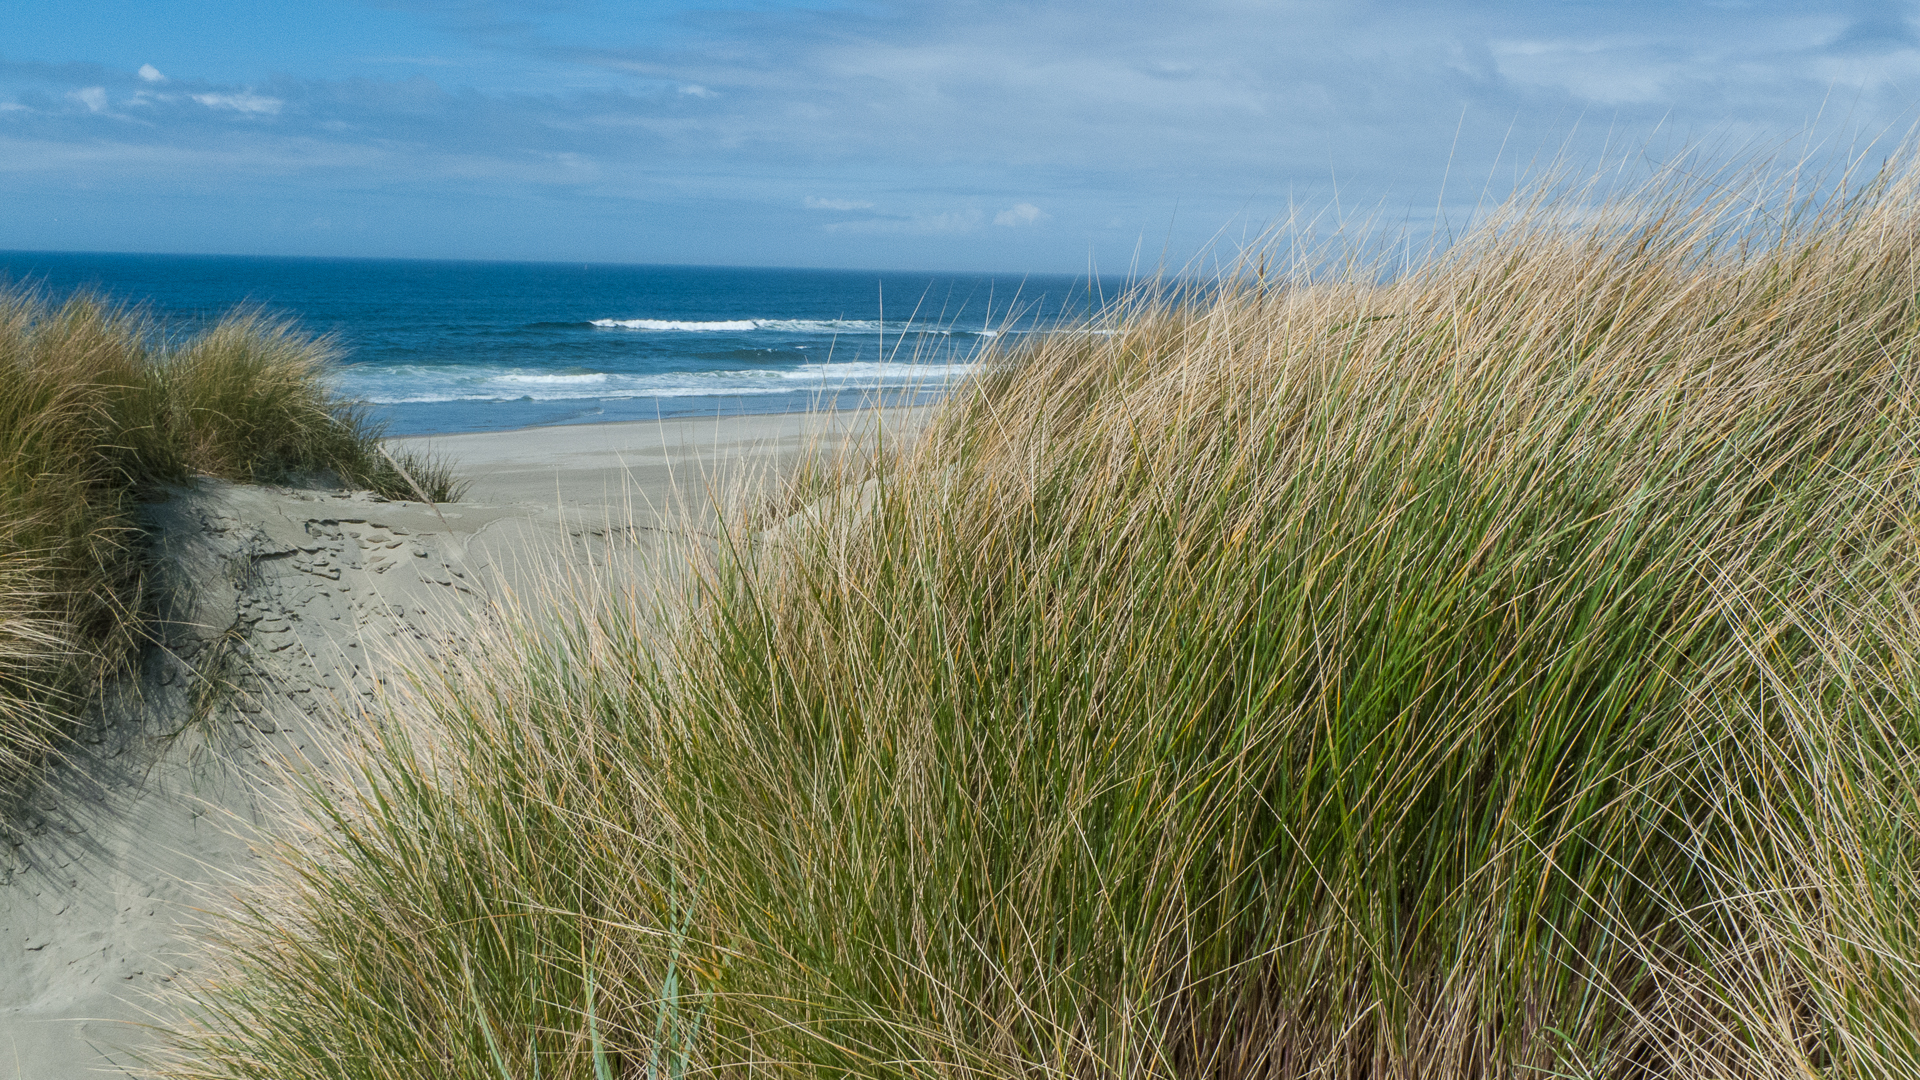 A glimpse of the ocean through the dunes.